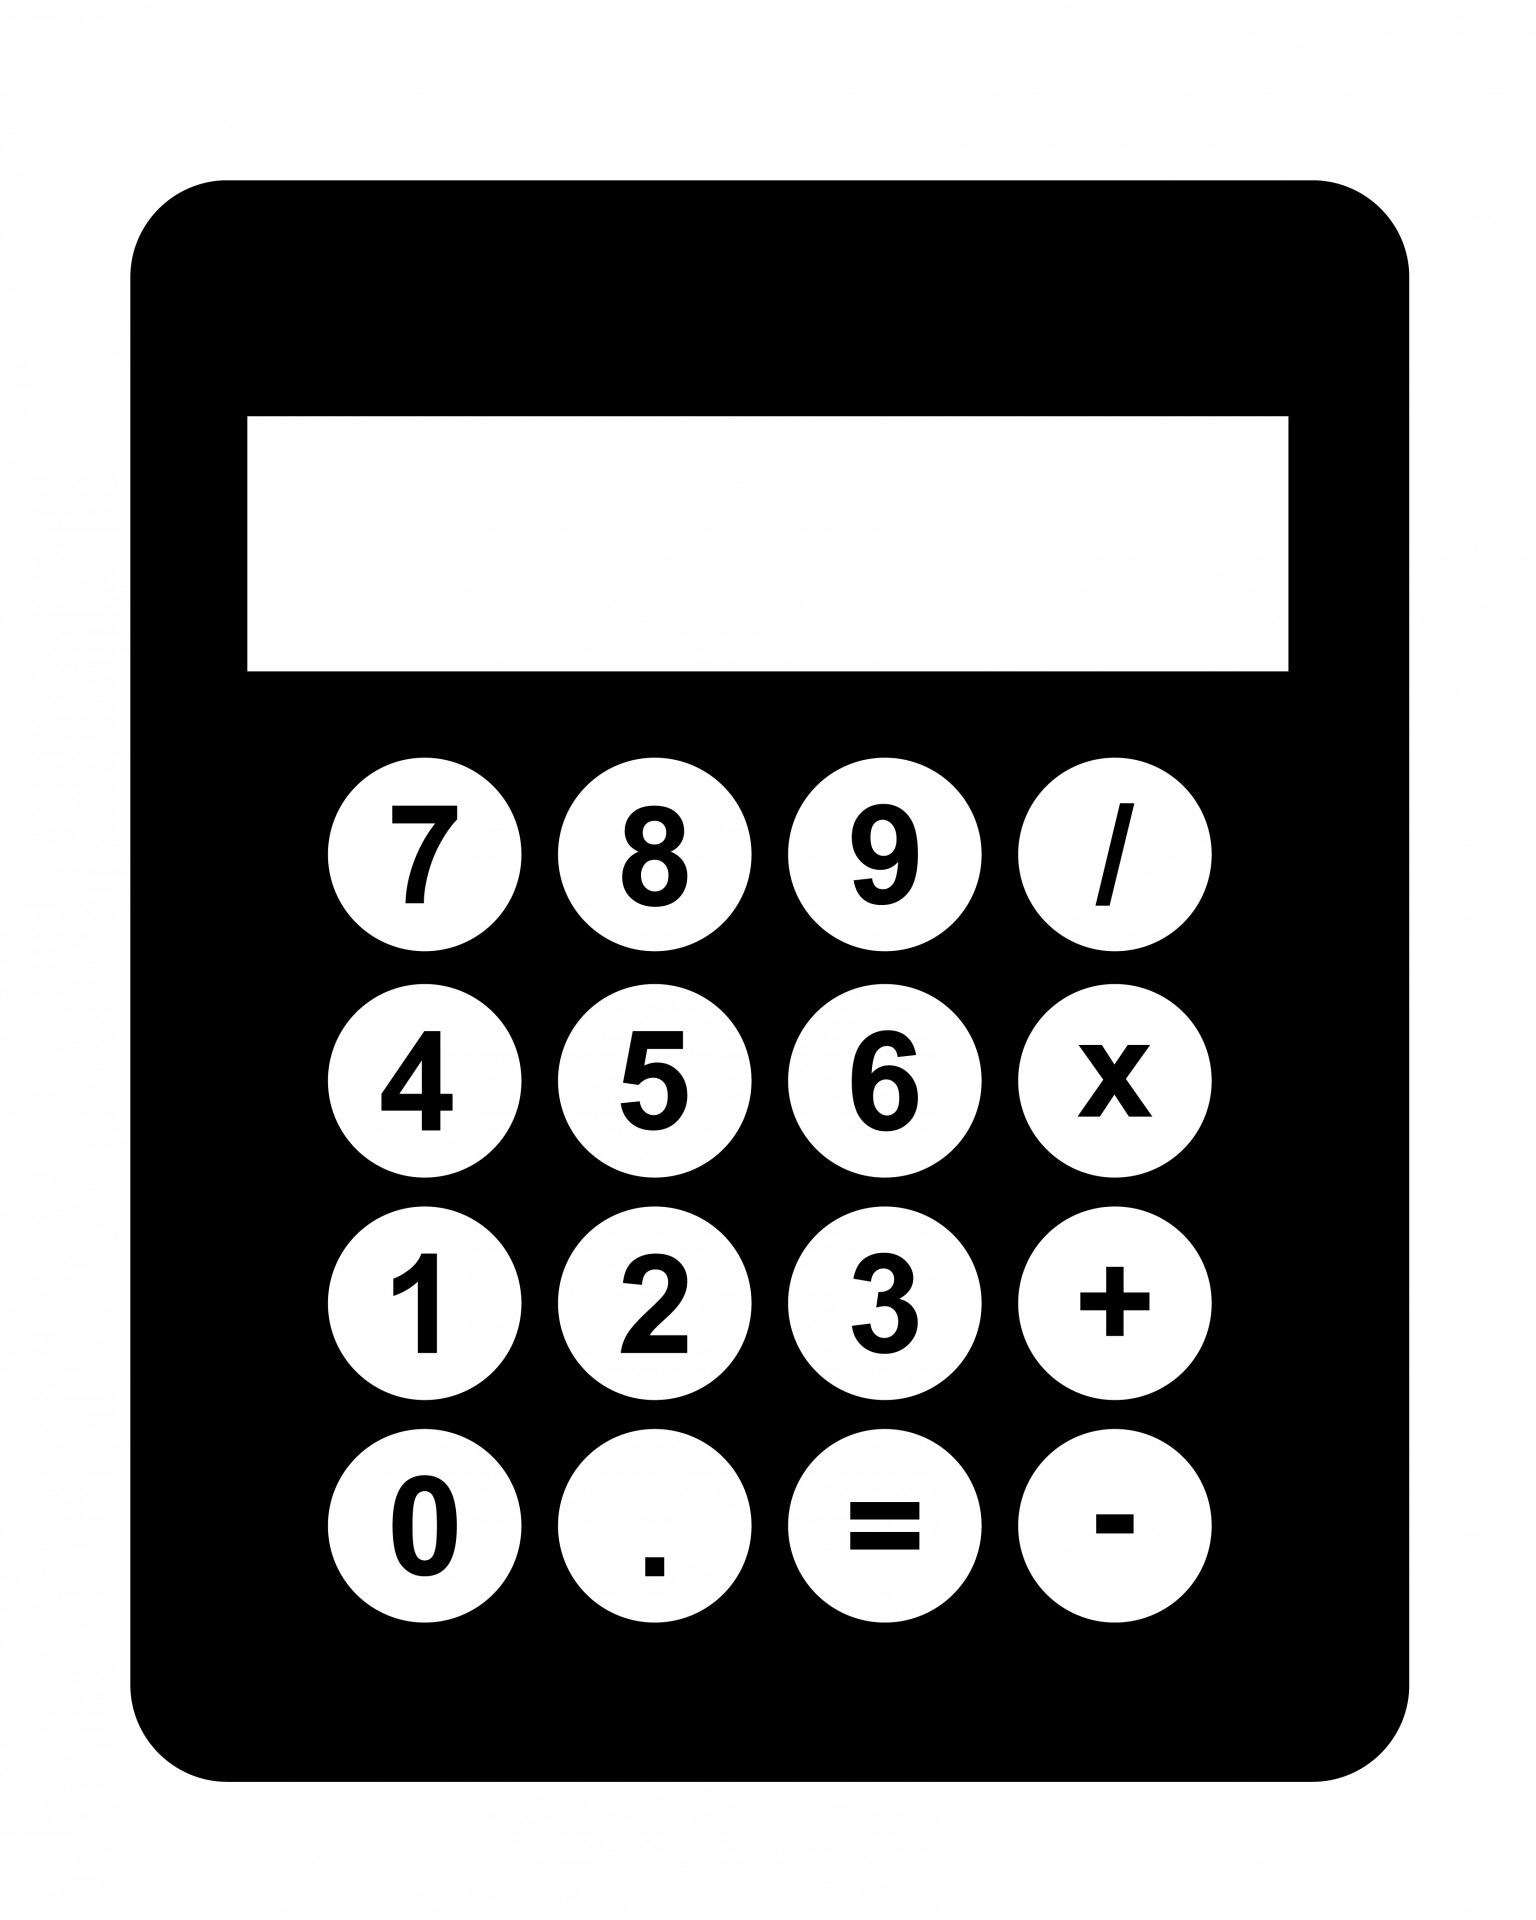 Calculator clipart. Black free stock photo